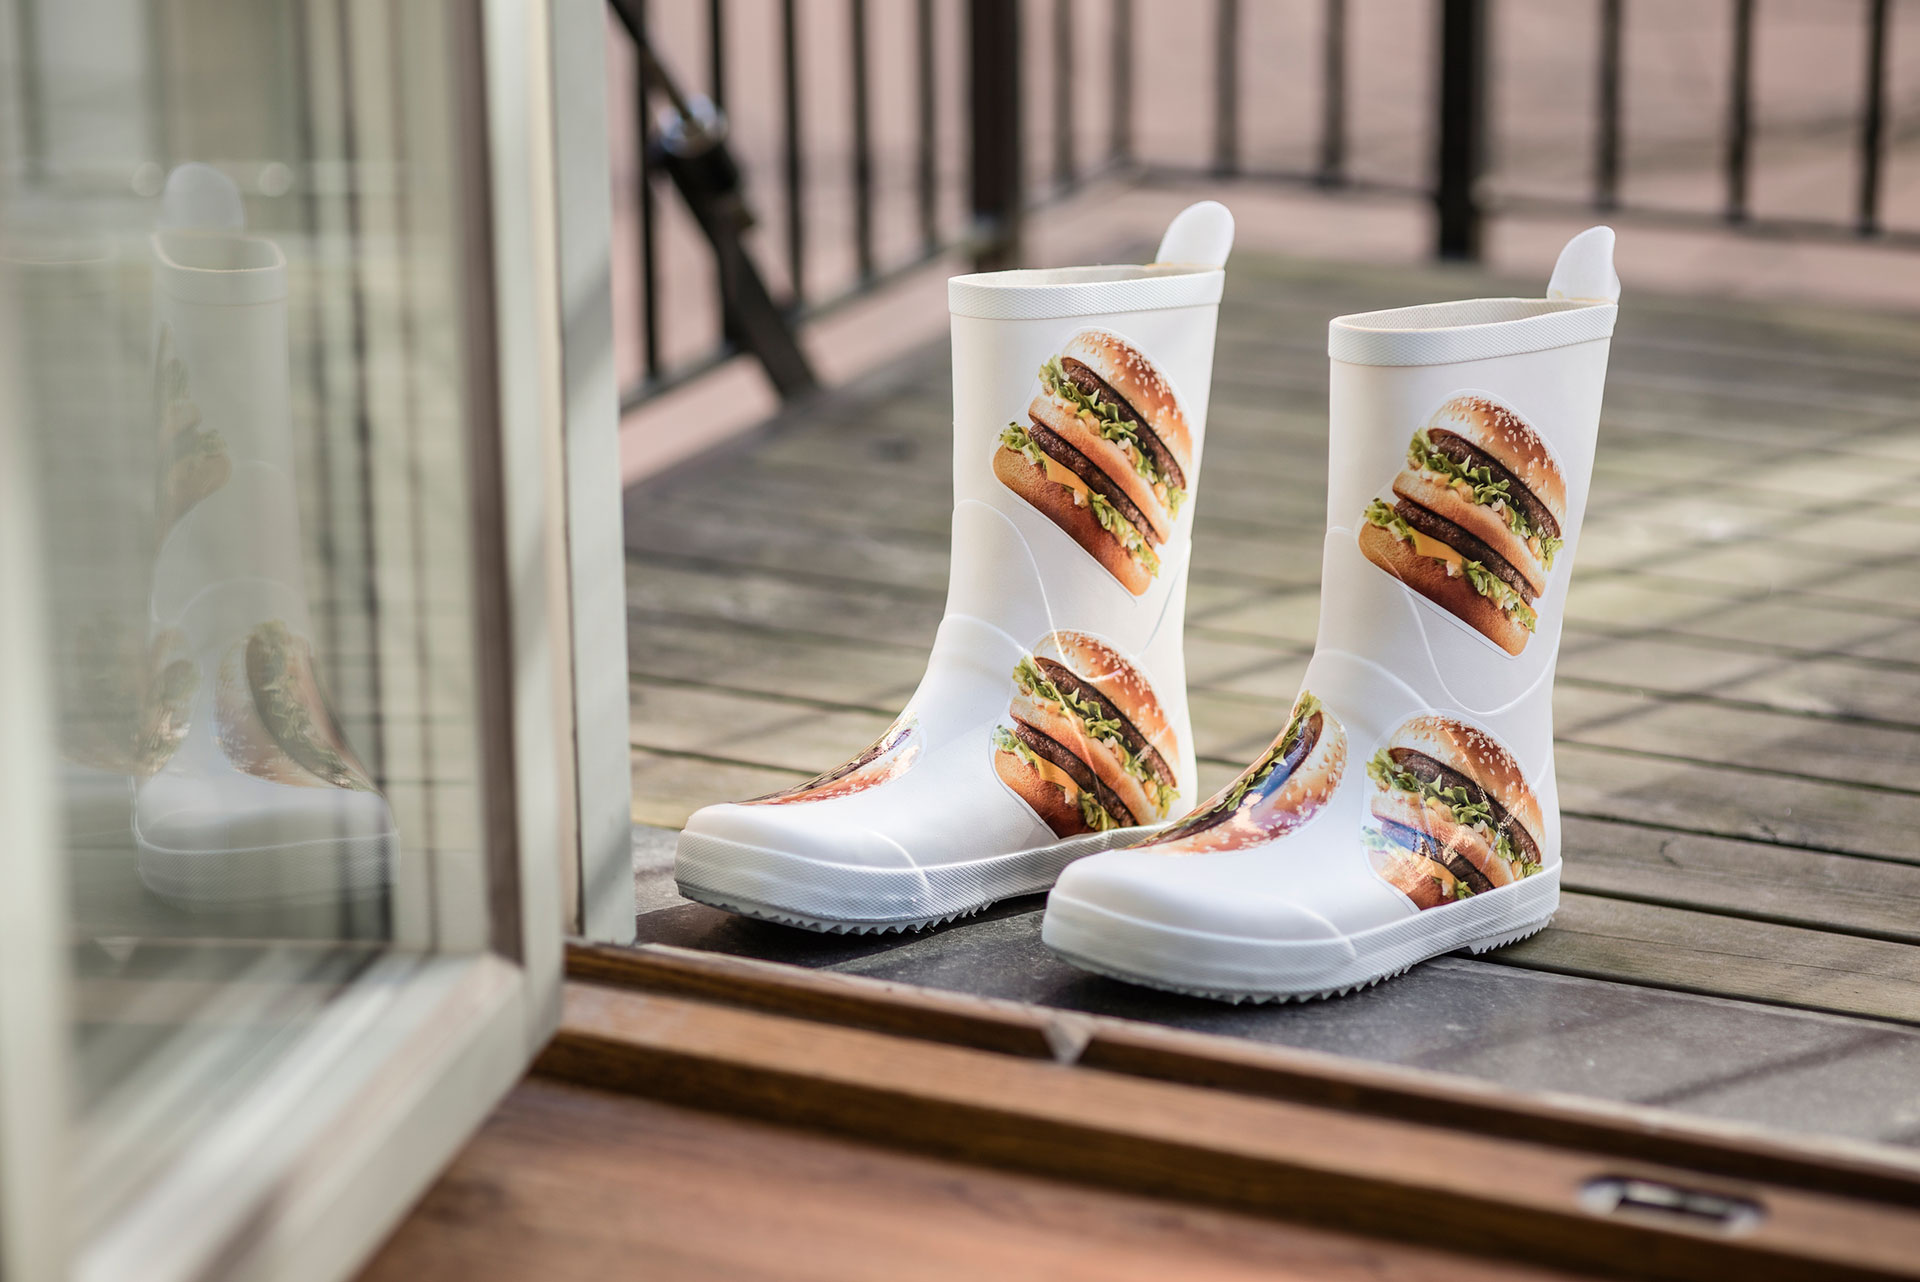 Fashion Big Mac